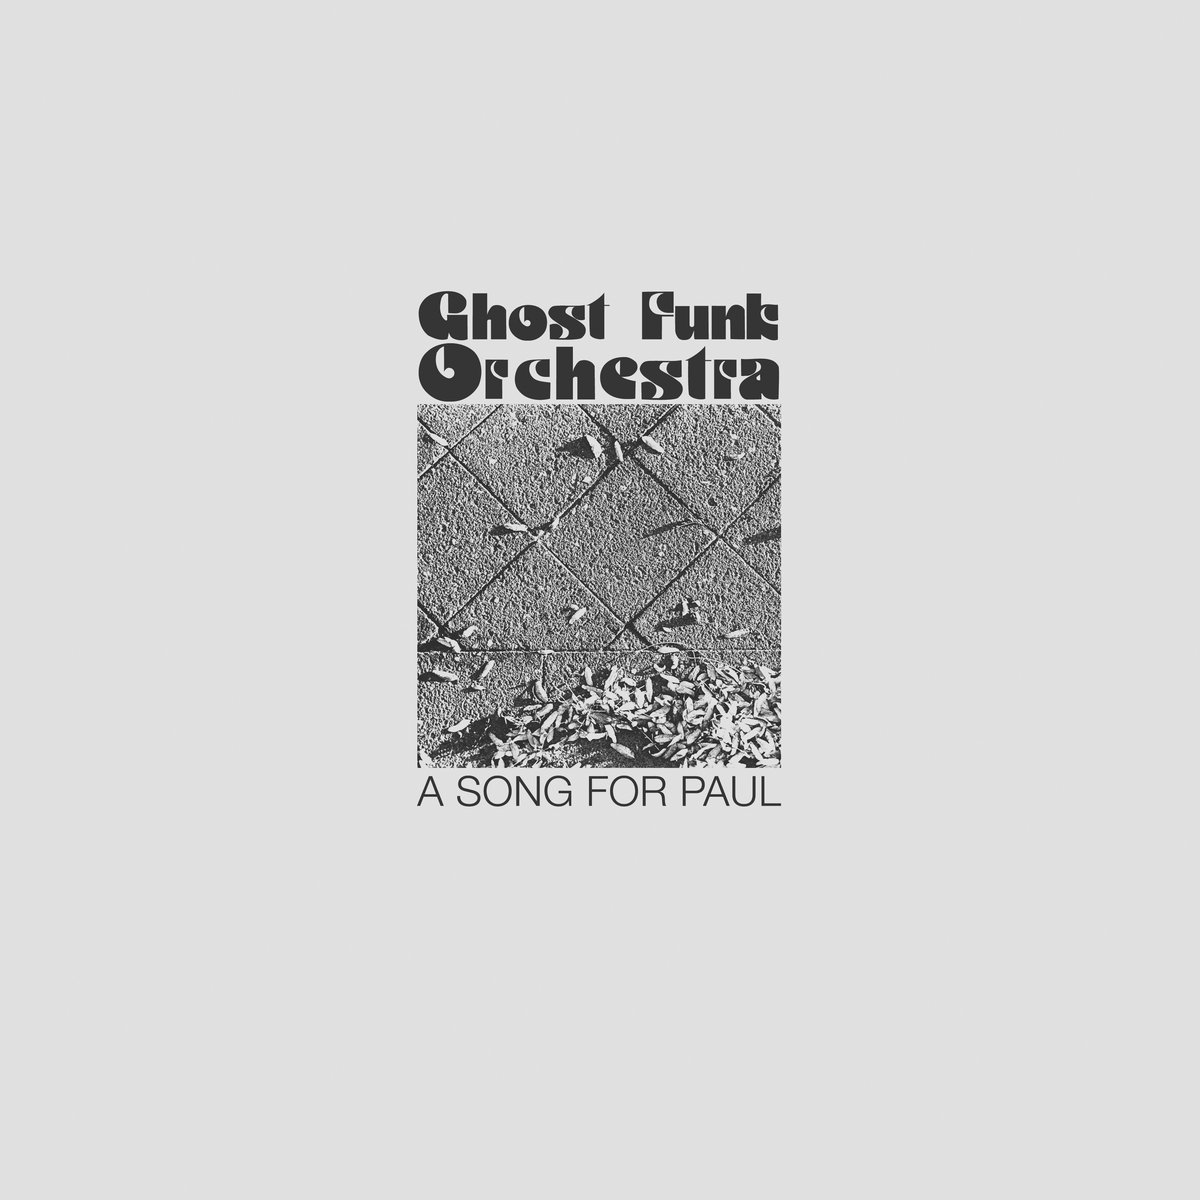 A Song For Paul | Ghost Funk Orchestra